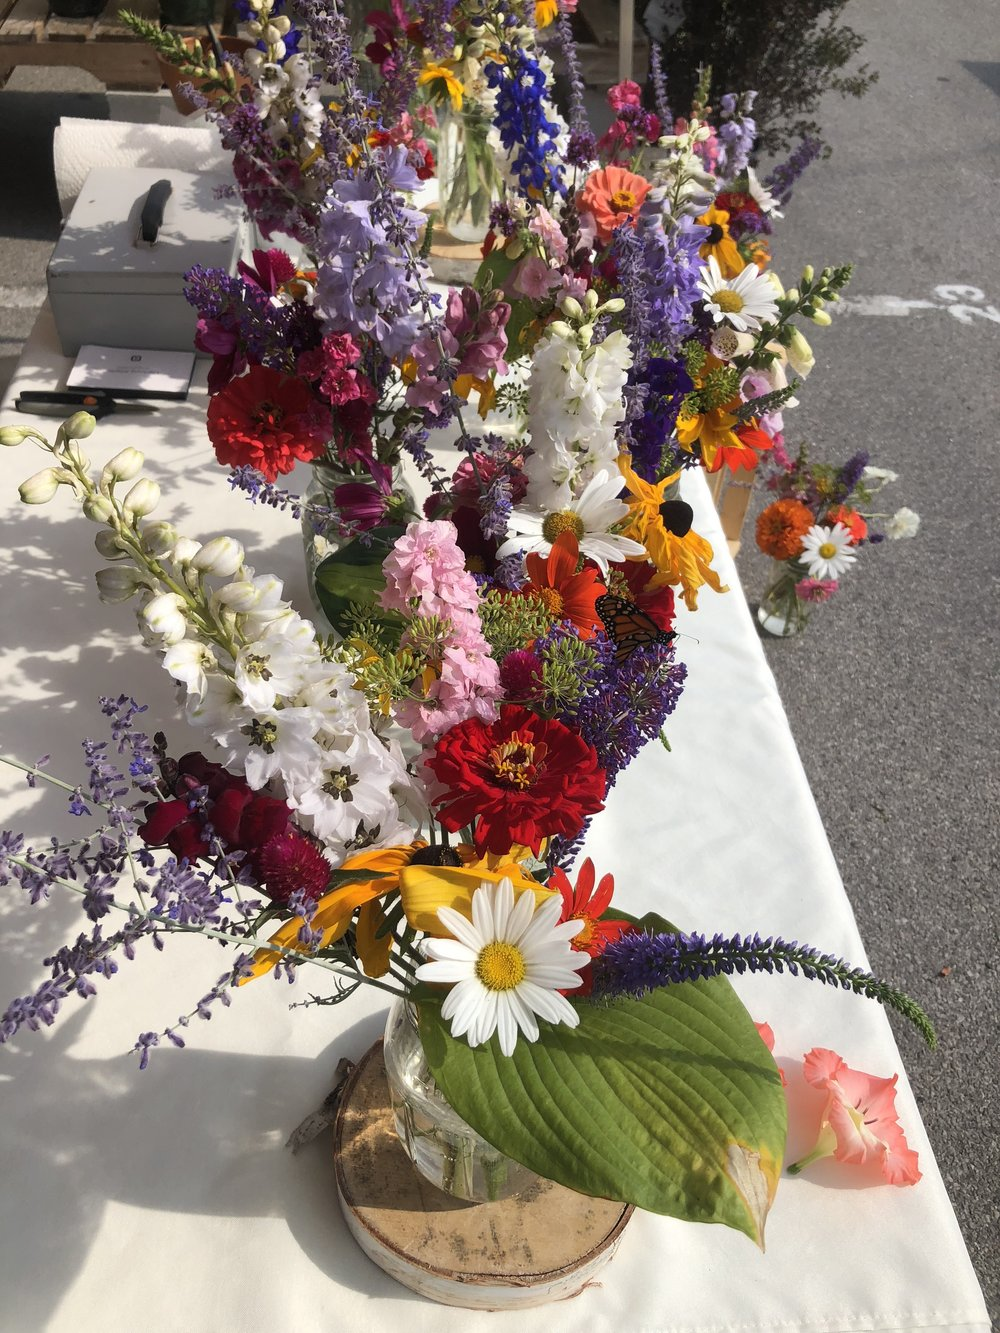 8/23/18 at the Farmer's Market in Northport